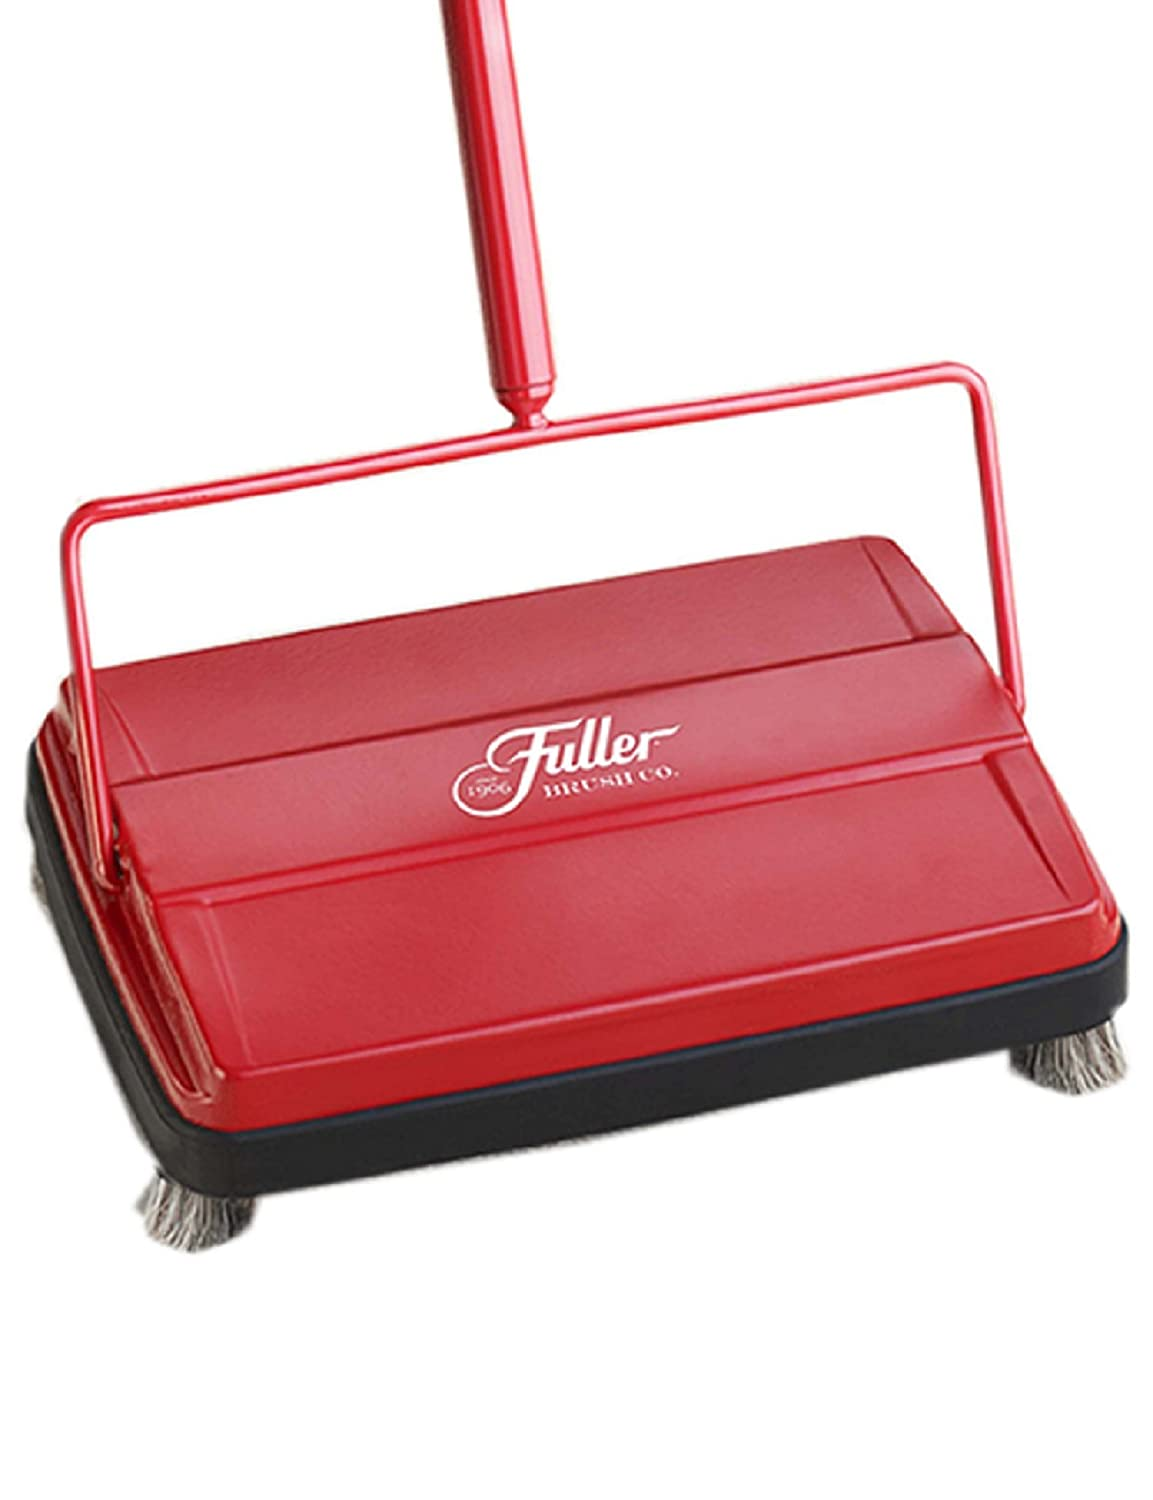 "Fuller Brush Electrostatic Carpet & Floor Sweeper - 9"" Cleaning Path - Red"